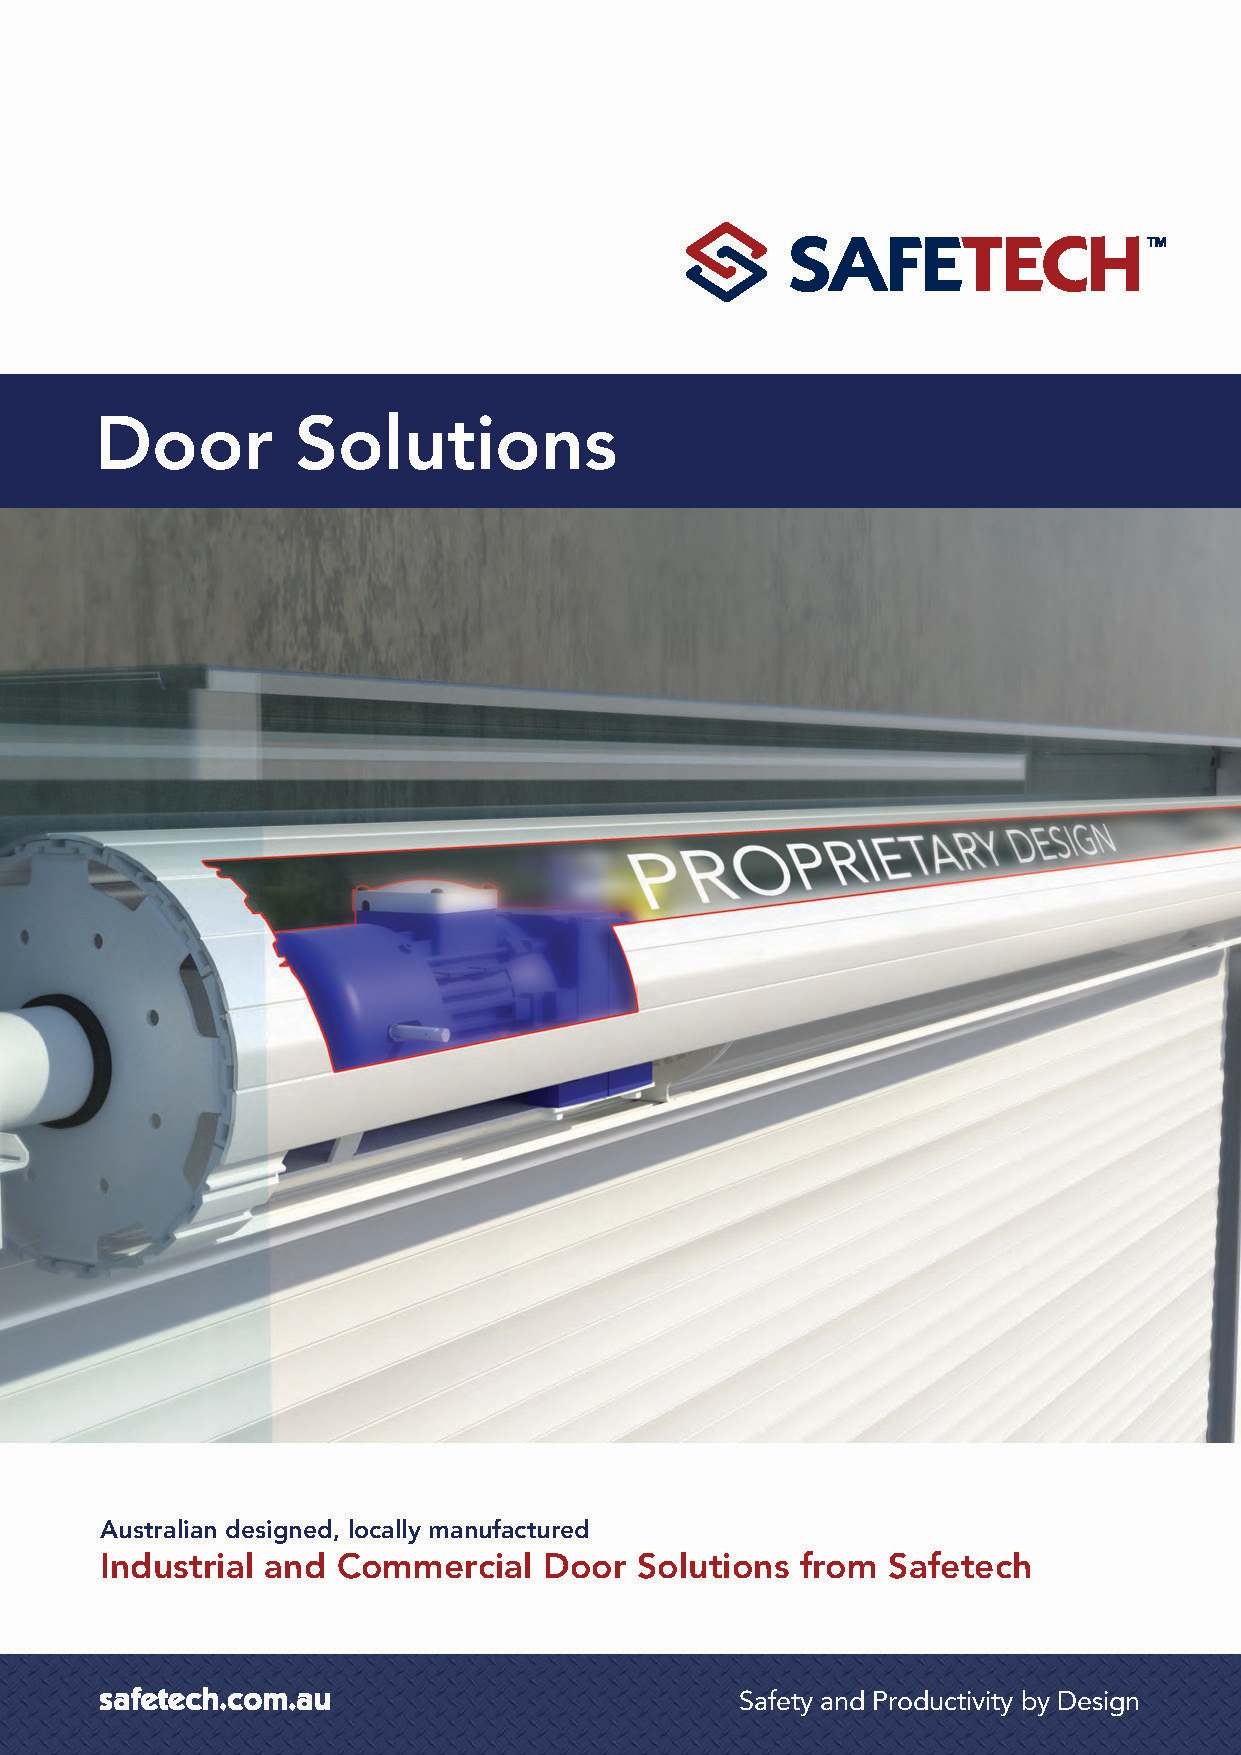 Safetech_DoorSolutions_A4_v1.4_Page_01